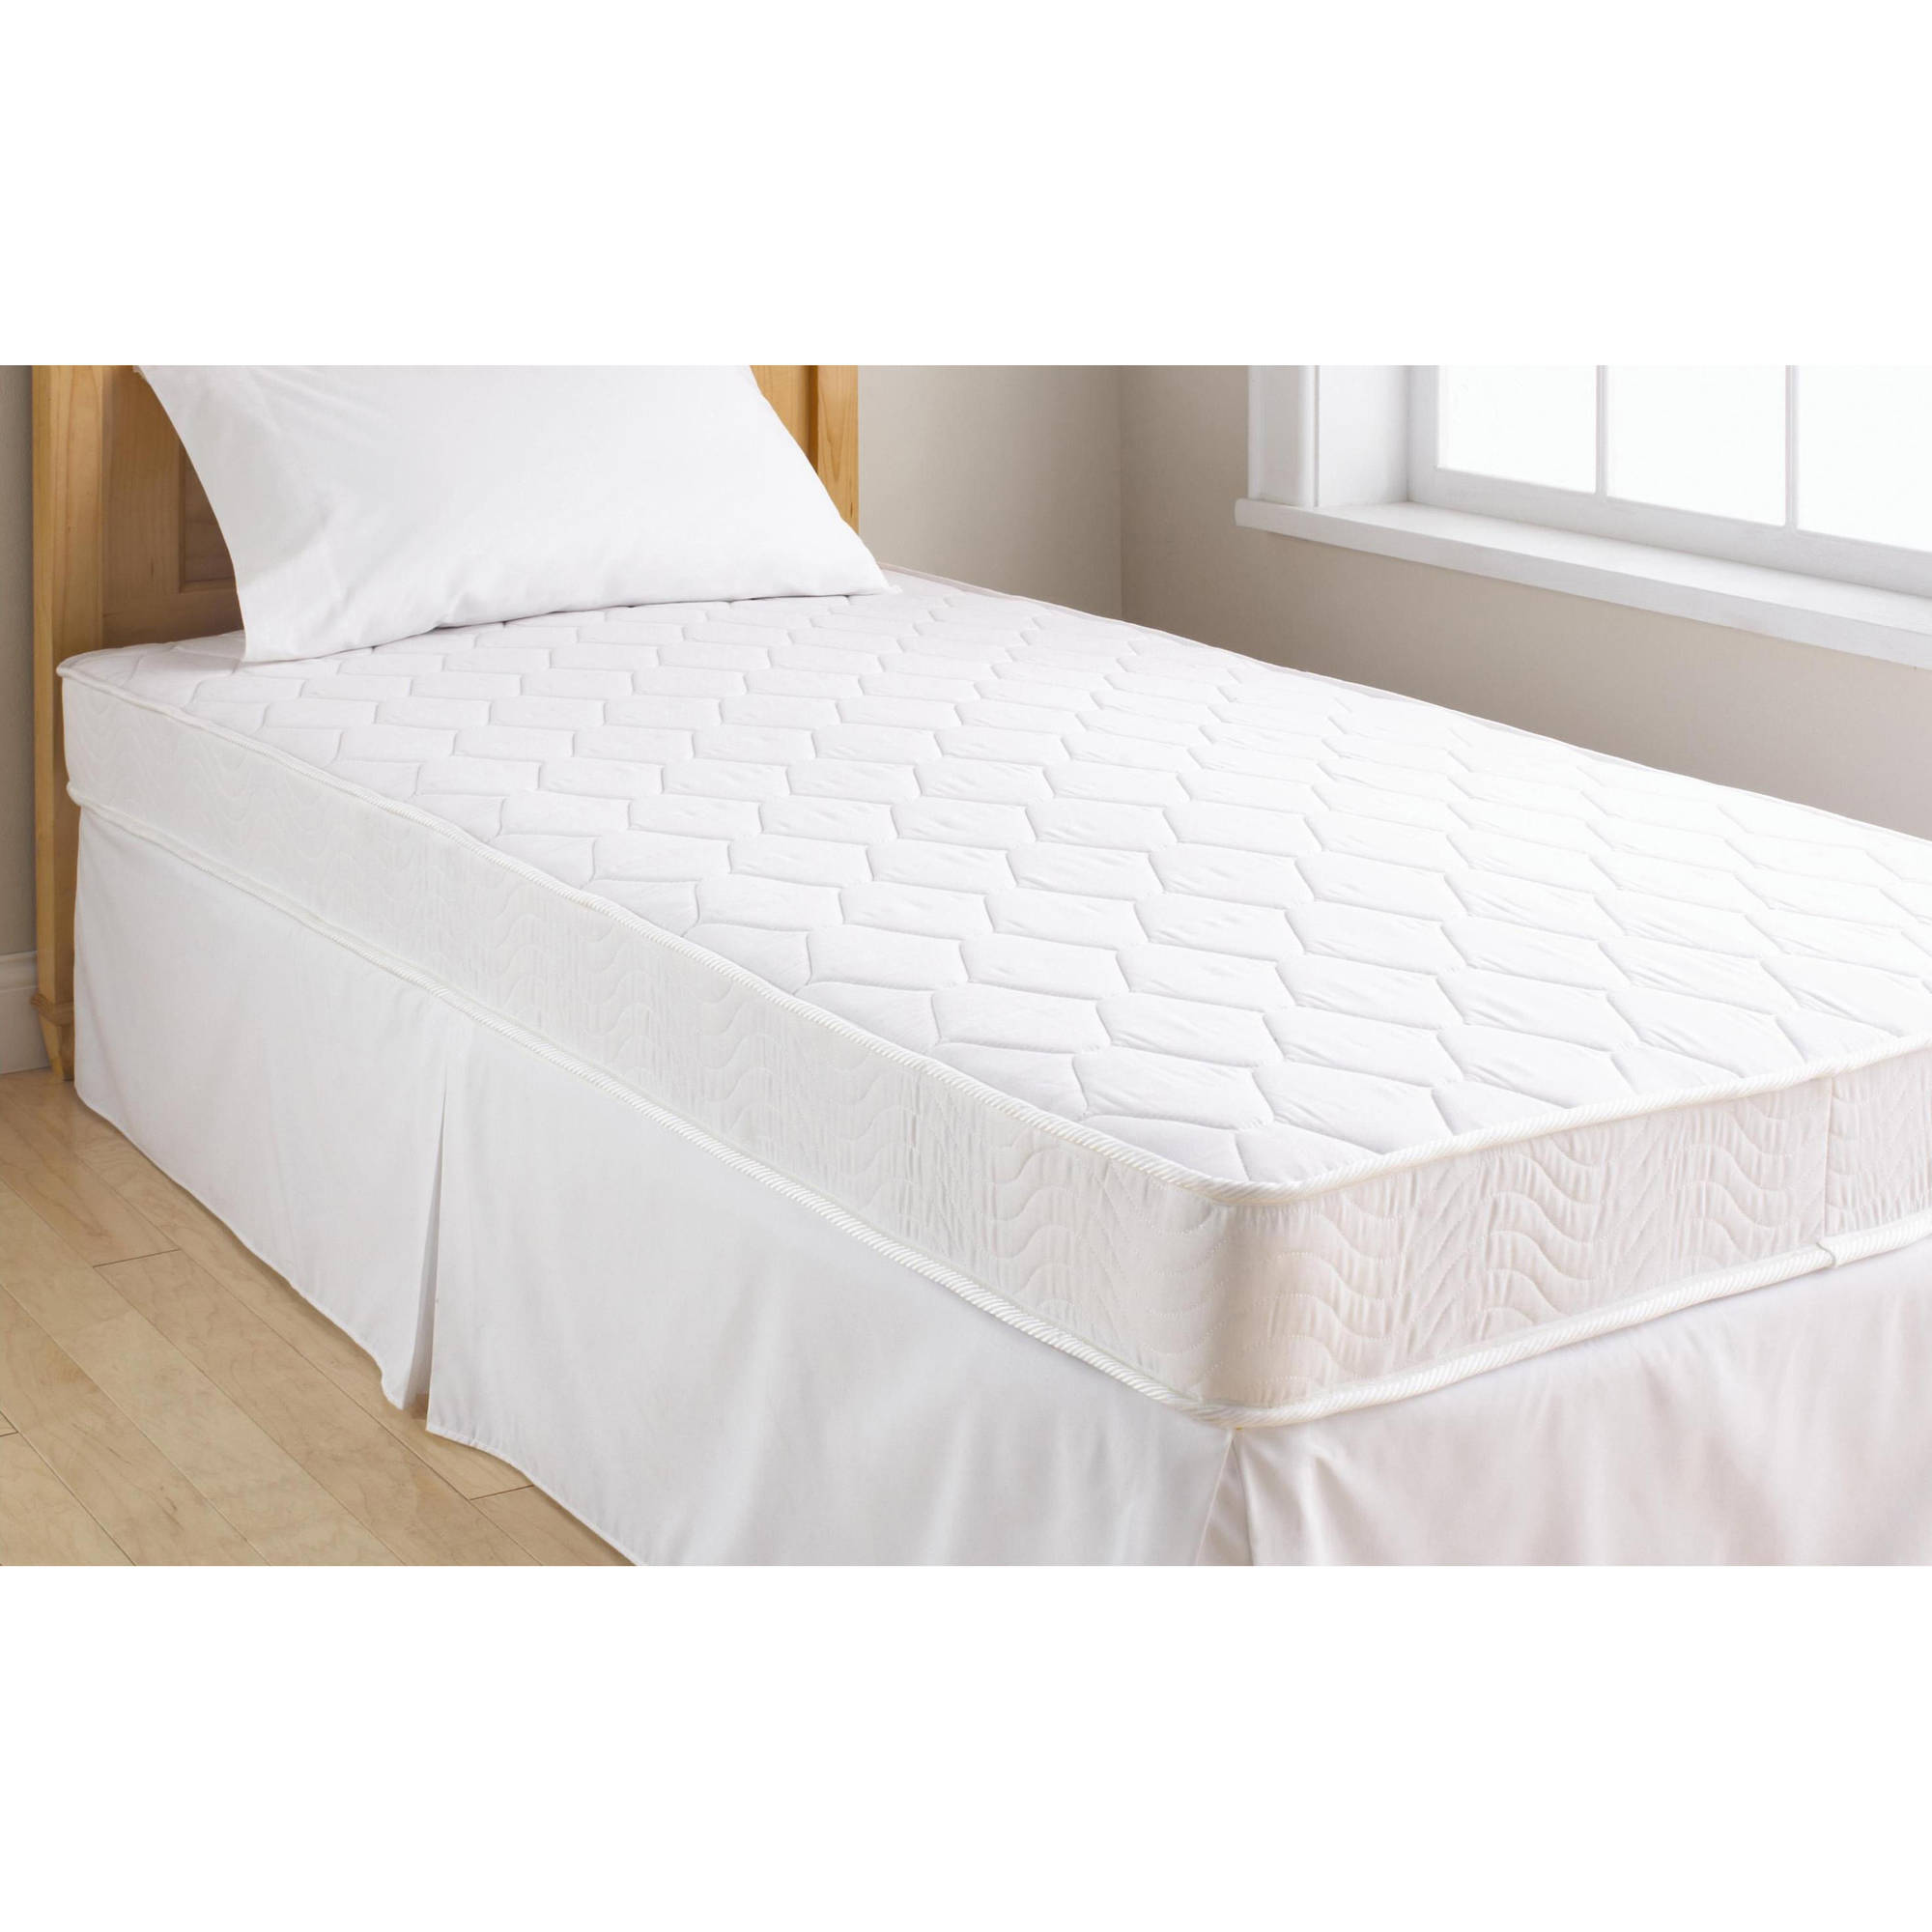 "Mainstays 6"" Coil Mattress, Multiple Sizes"